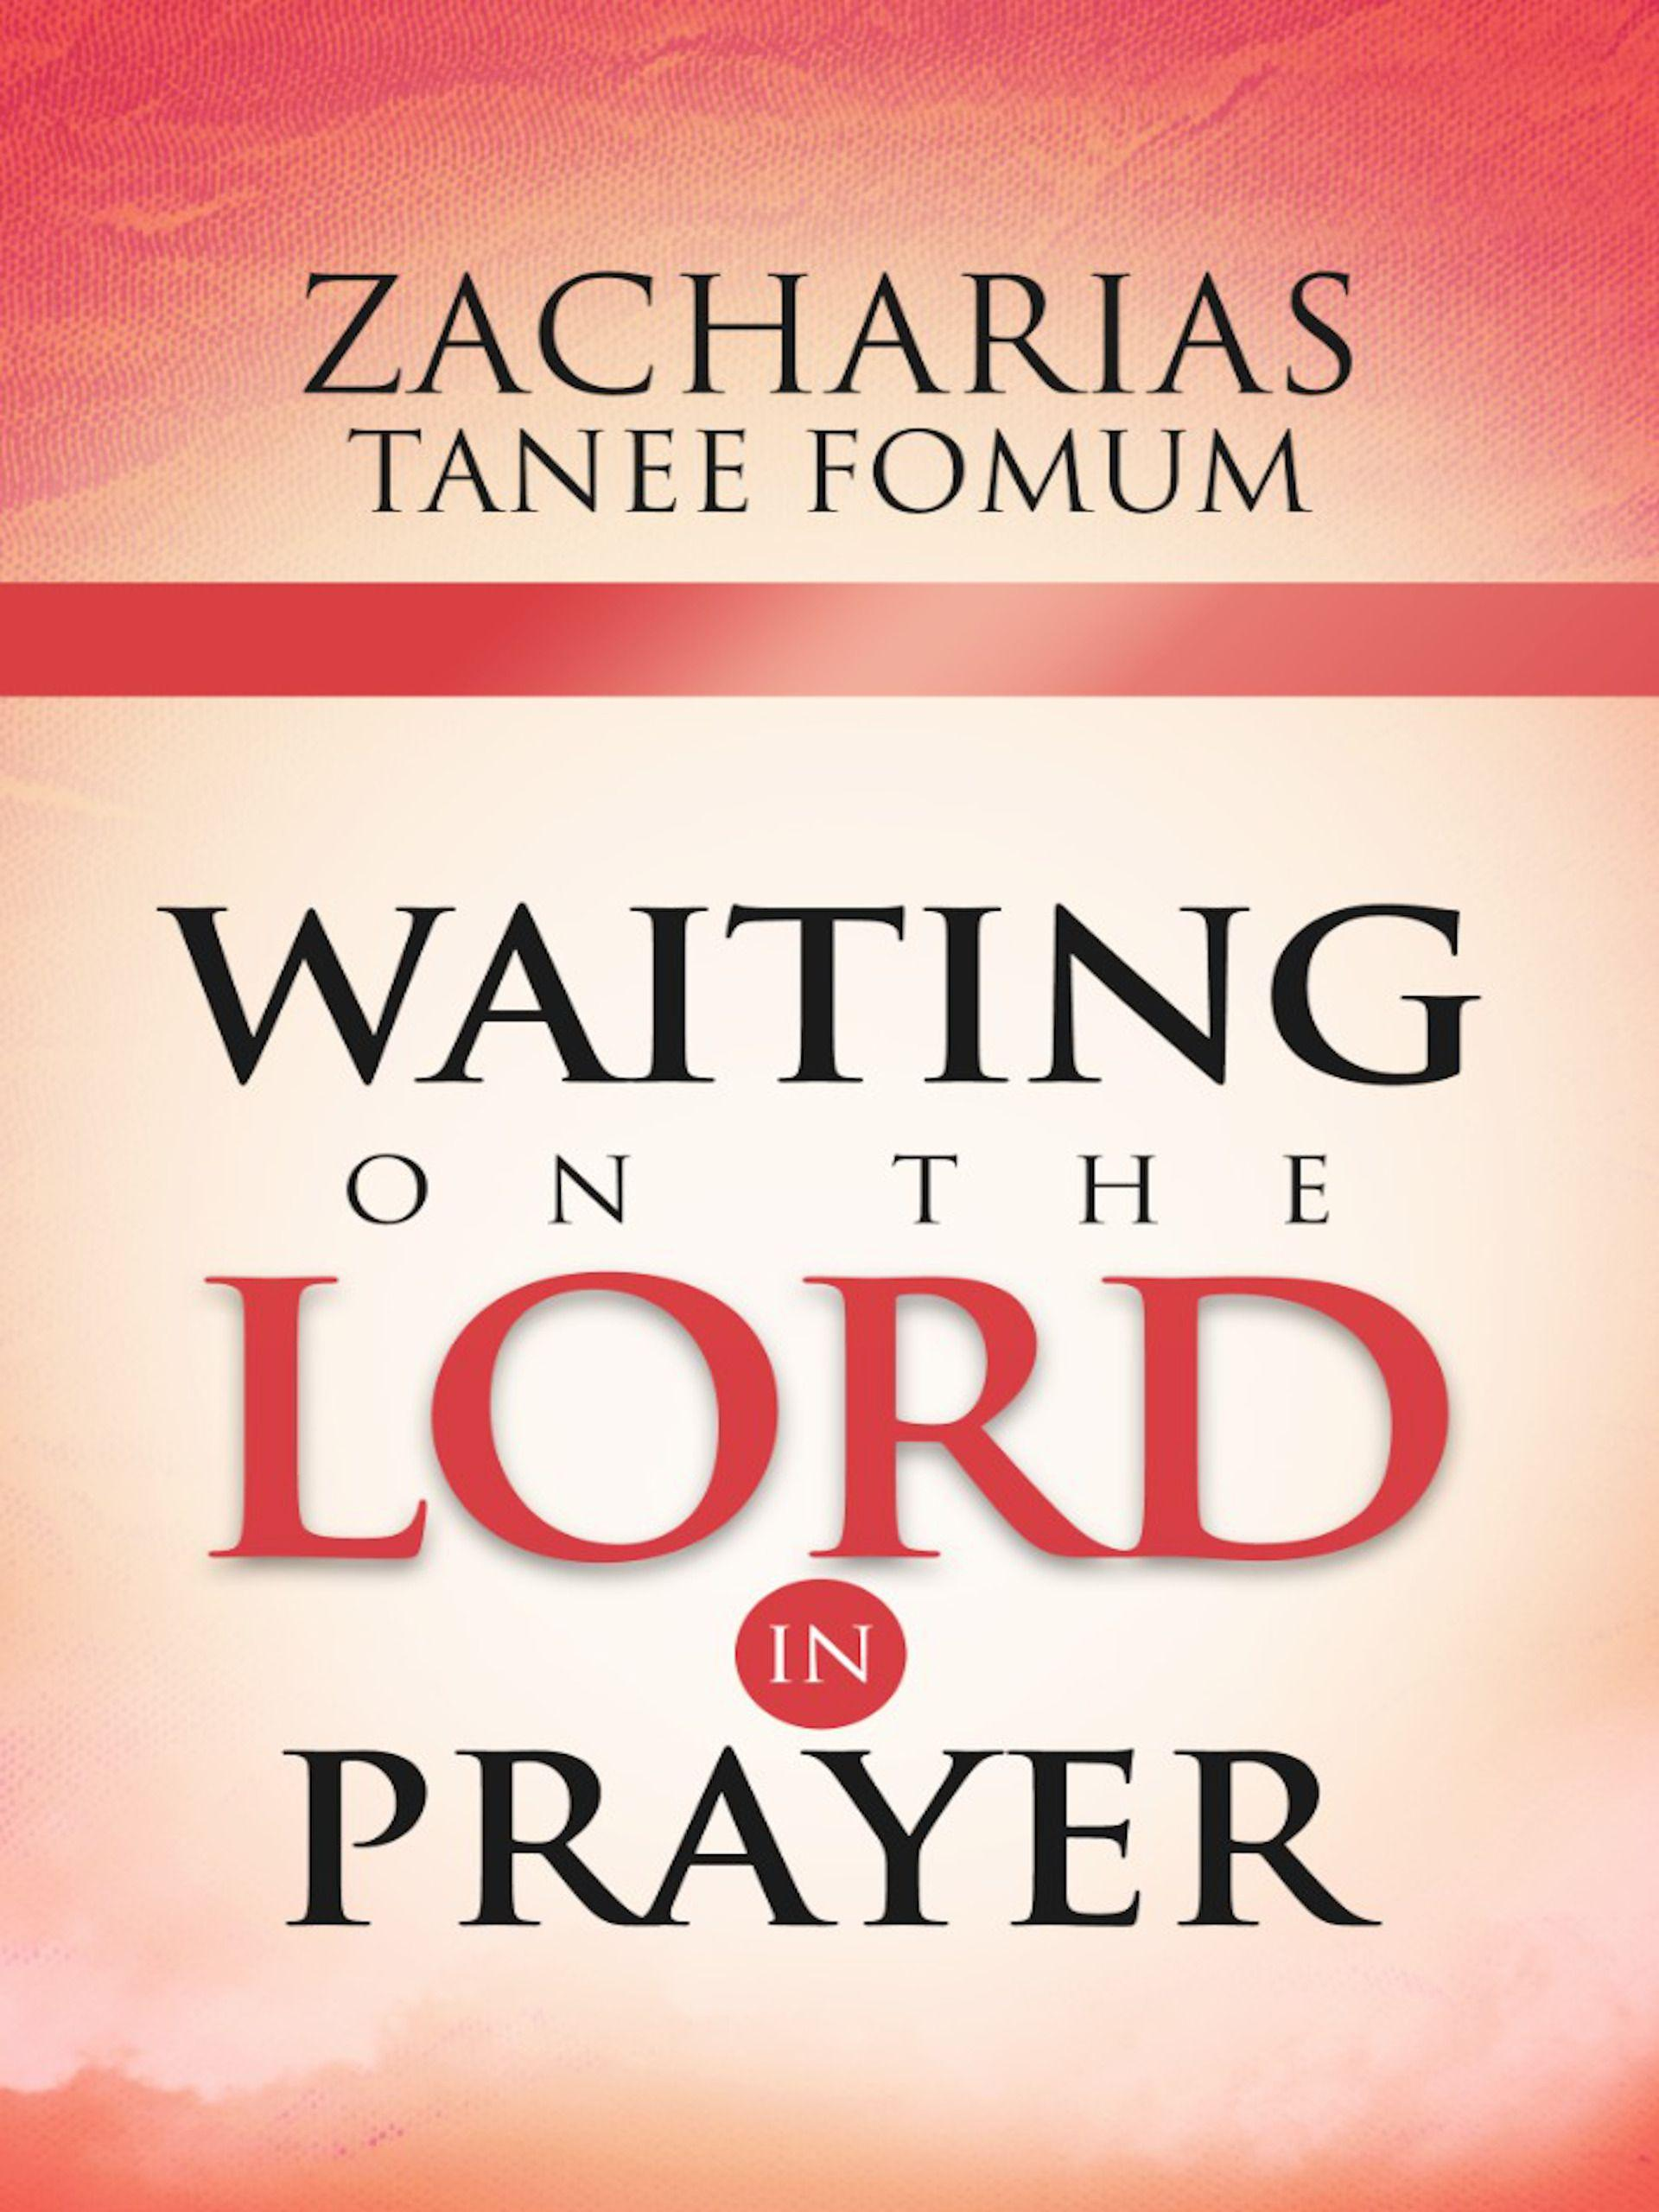 Waiting on The Lord in Prayer